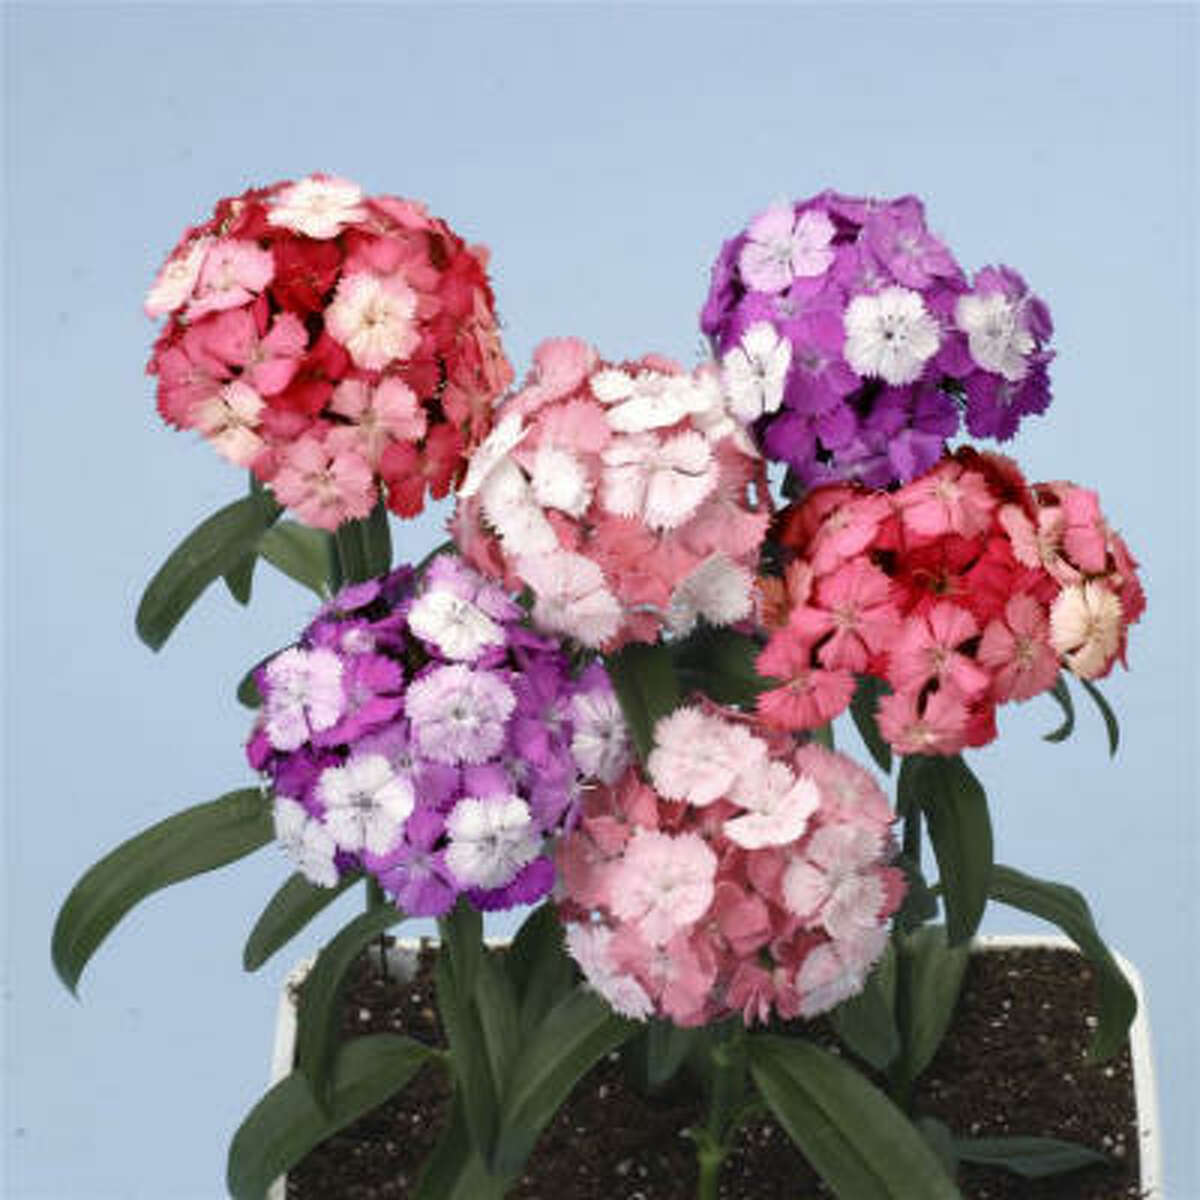 The fragrant, domed clusters of the 'Noverna Clown' dianthus open white then change to pink, purple or salmon creating an unusual color pattern on each flower umbrel.